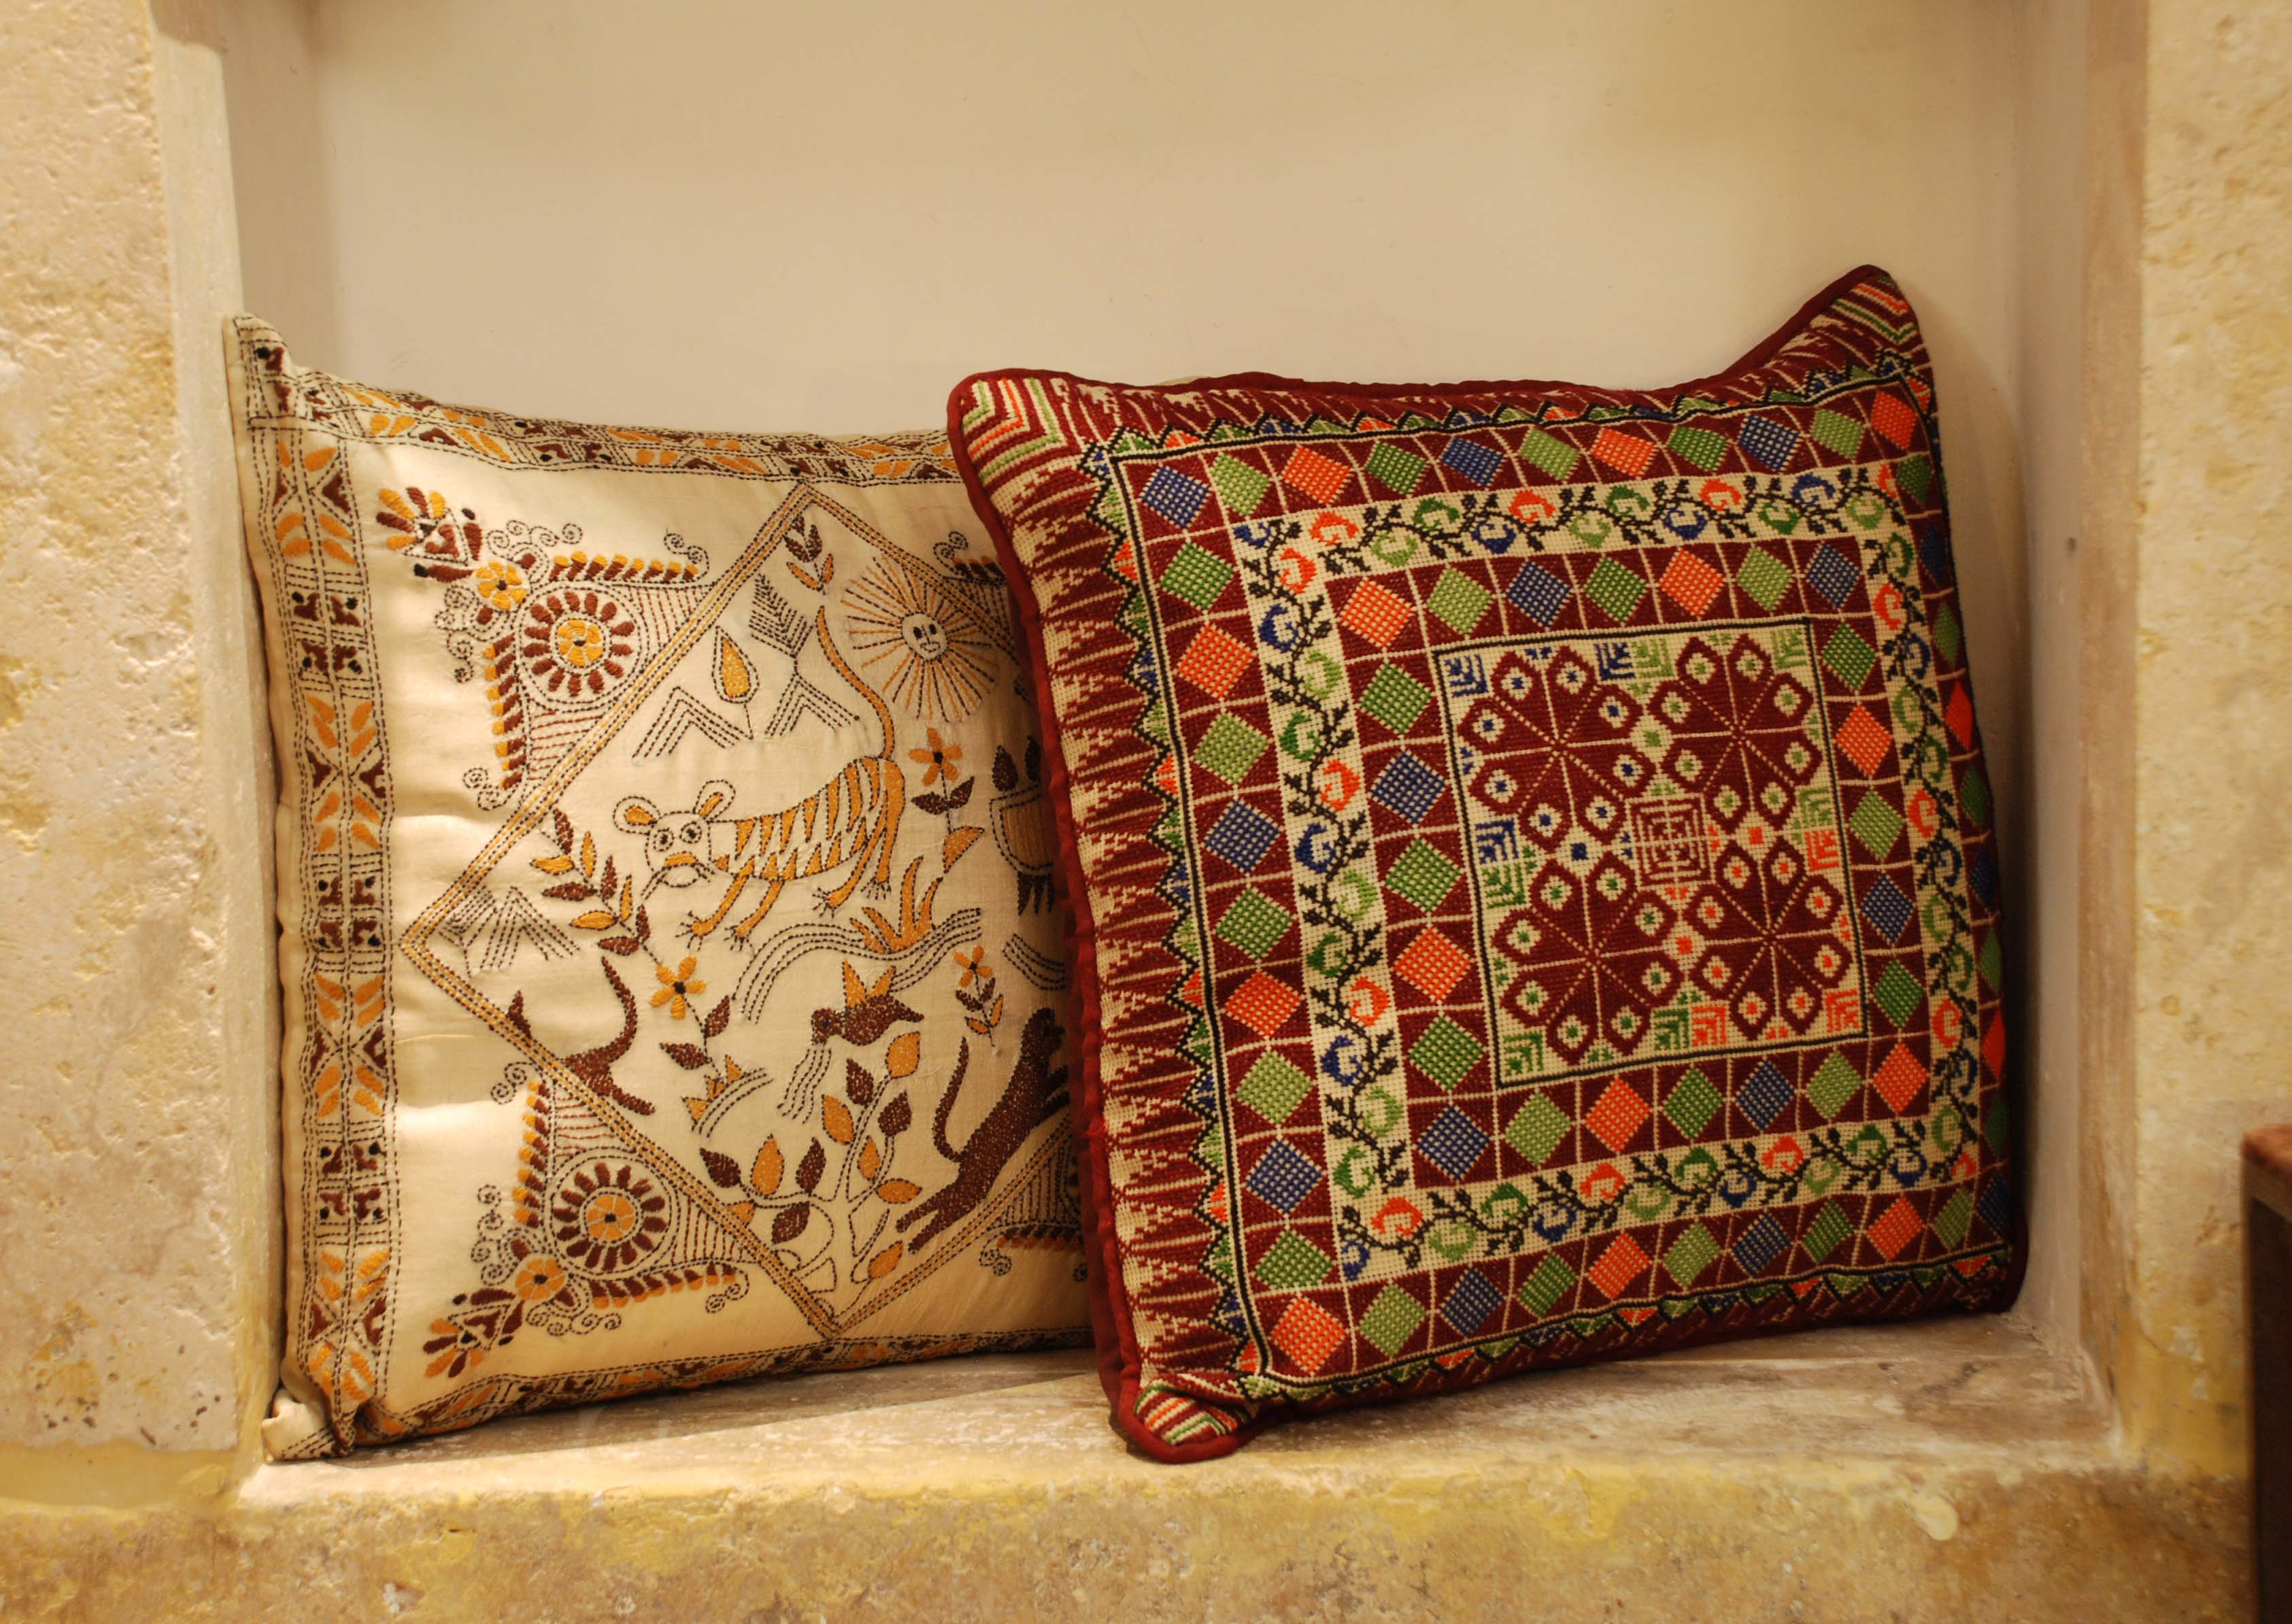 ornina handmade ocu2 embroidered cushion